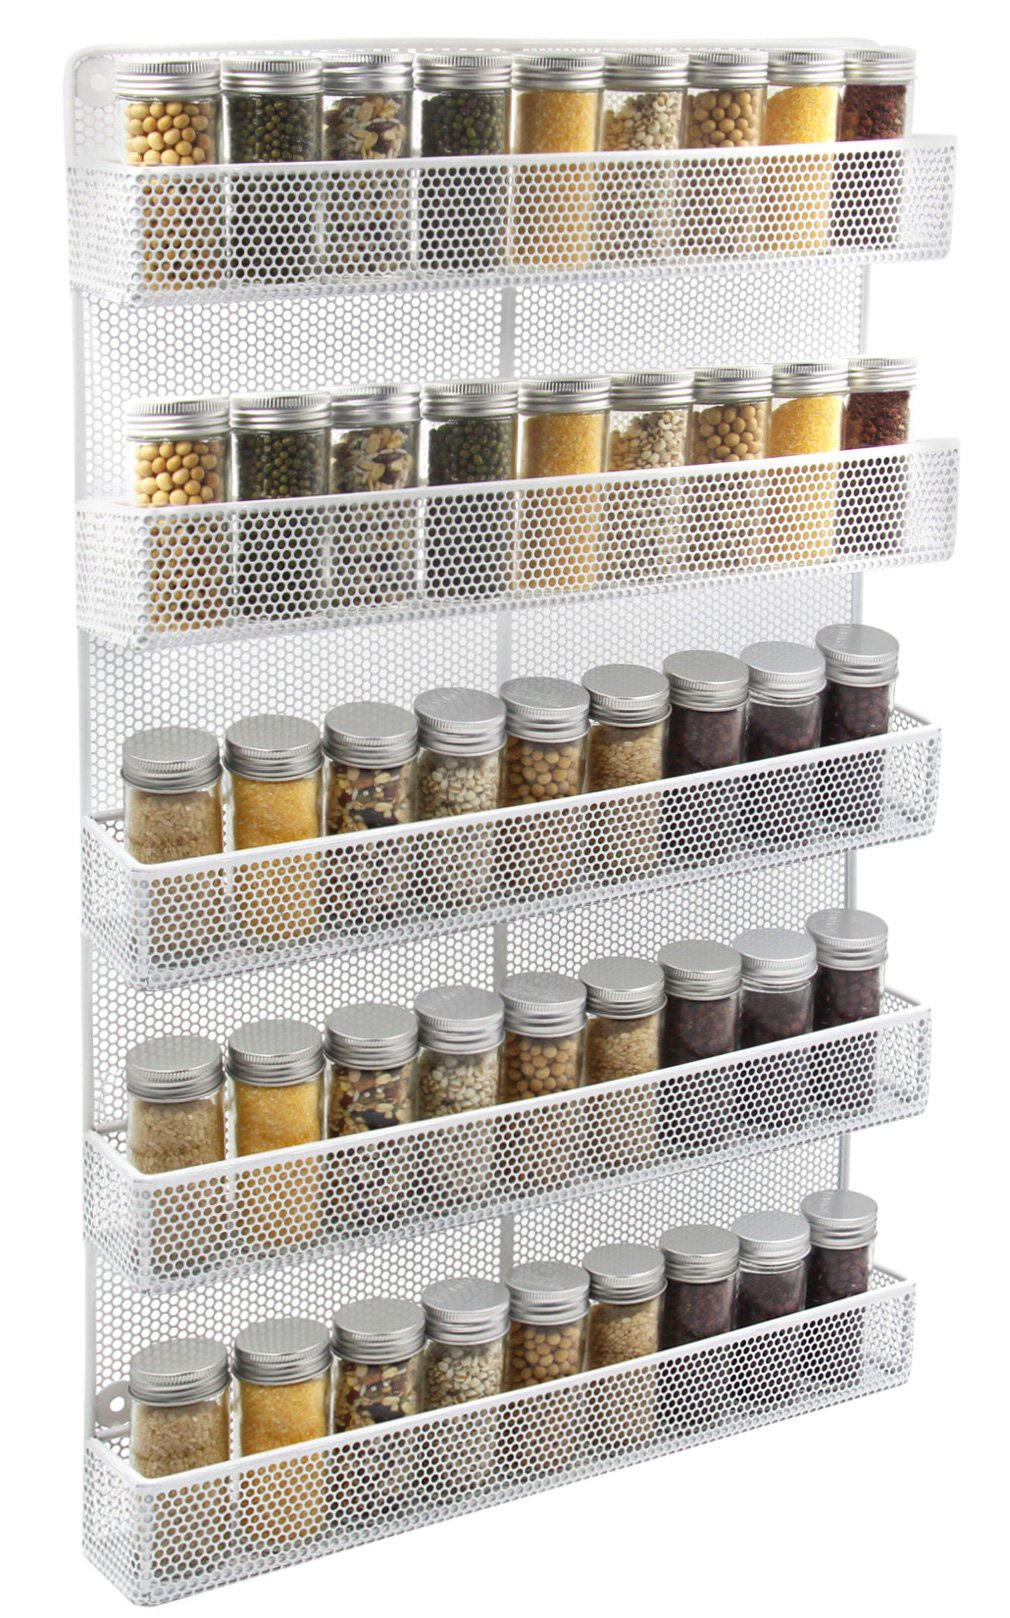 TQVAI 5 Tier Wall Mount Spice Rack Organizer Kitchen Spice Storage Shelf - Made of Sturdy Punching Net, White by TQVAI